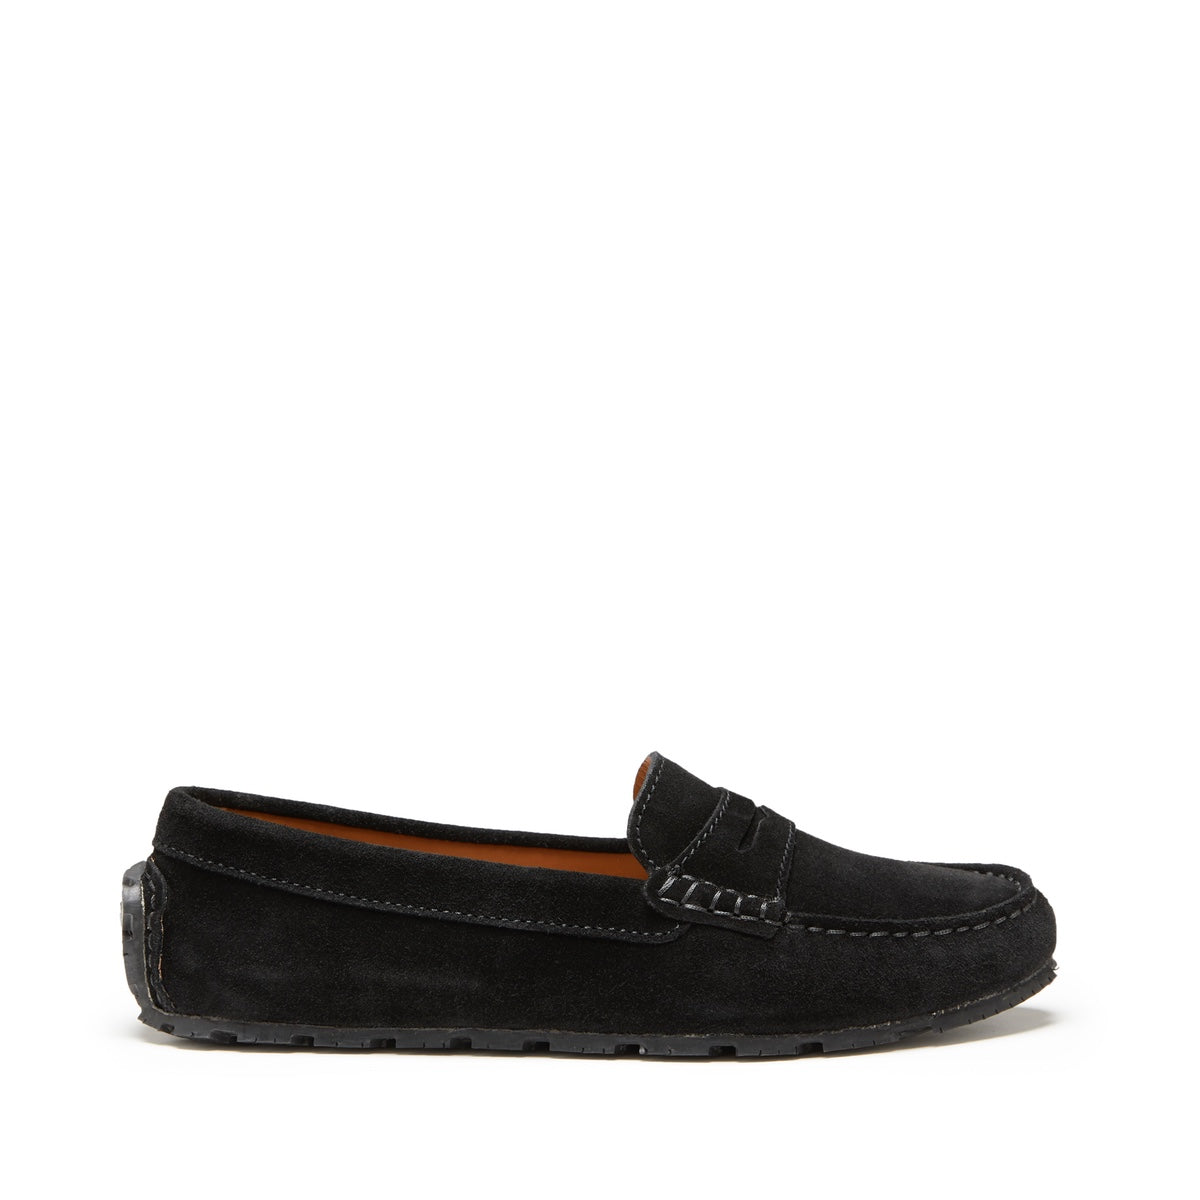 Women's Tyre Sole Penny Loafers, black suede